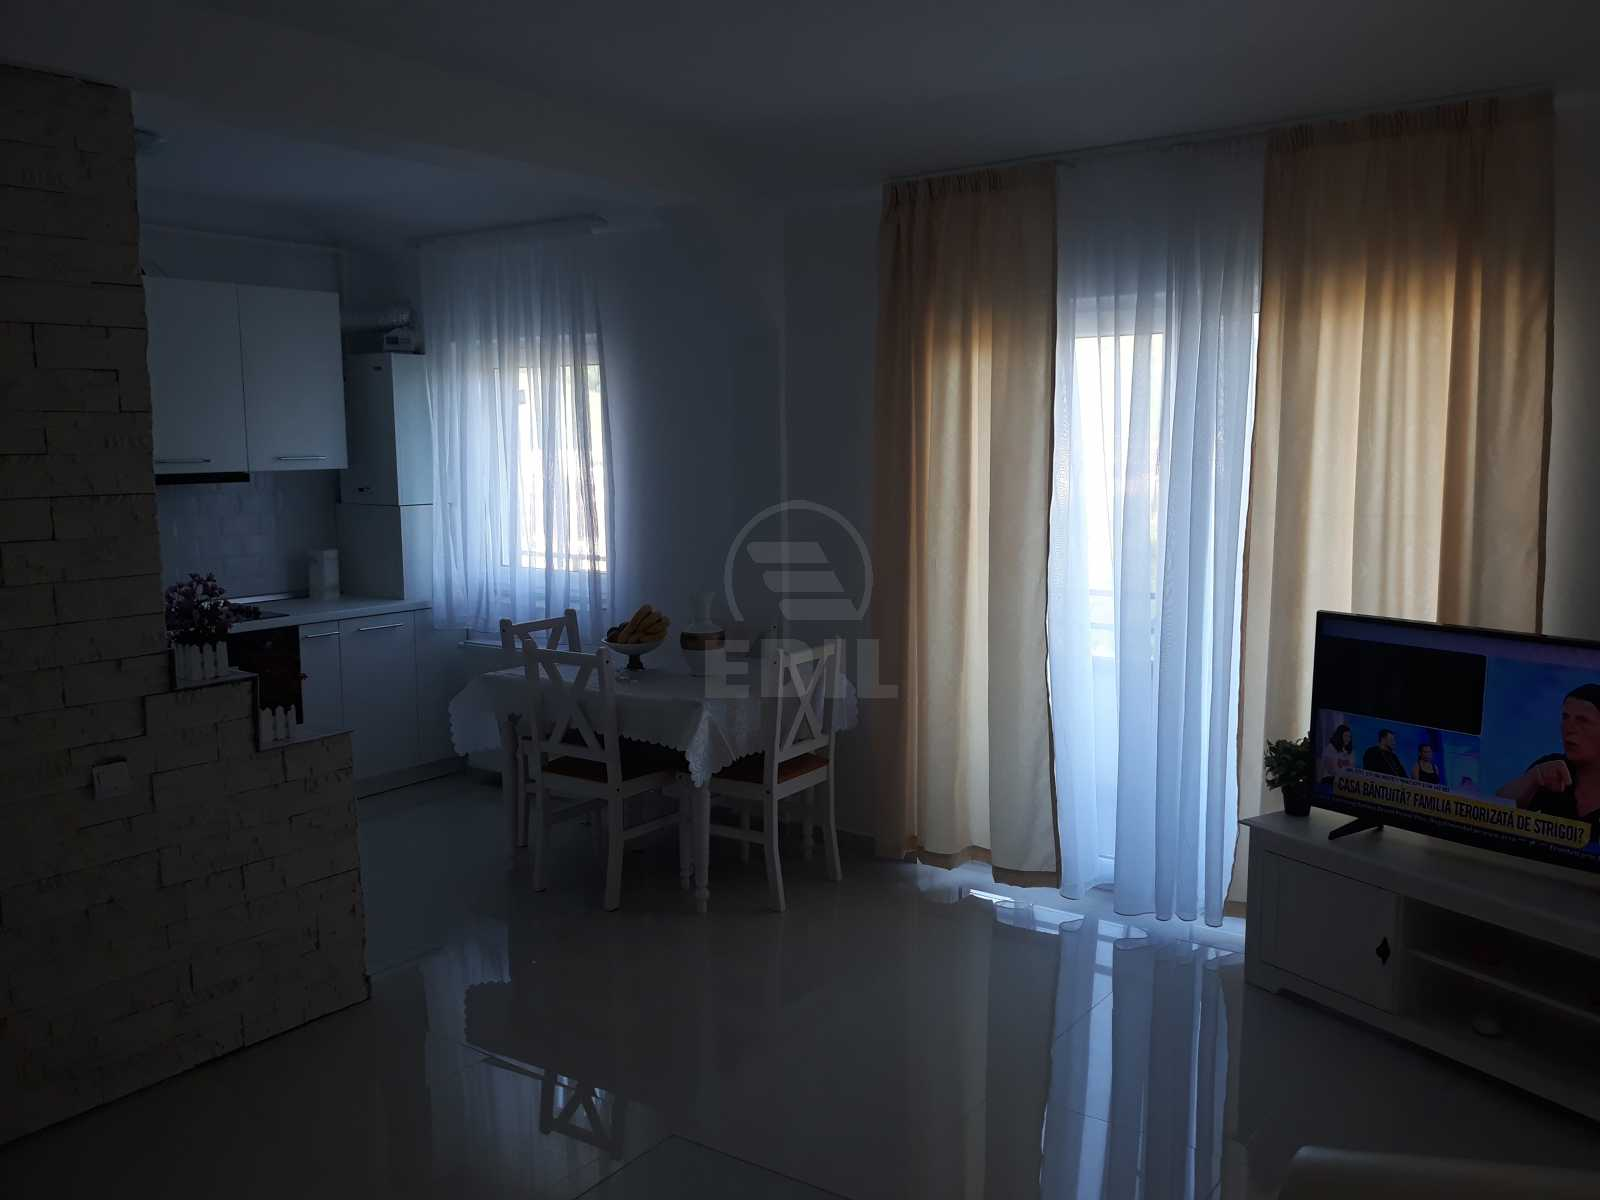 Apartment for rent 2 rooms, APCJ234187FLO-5